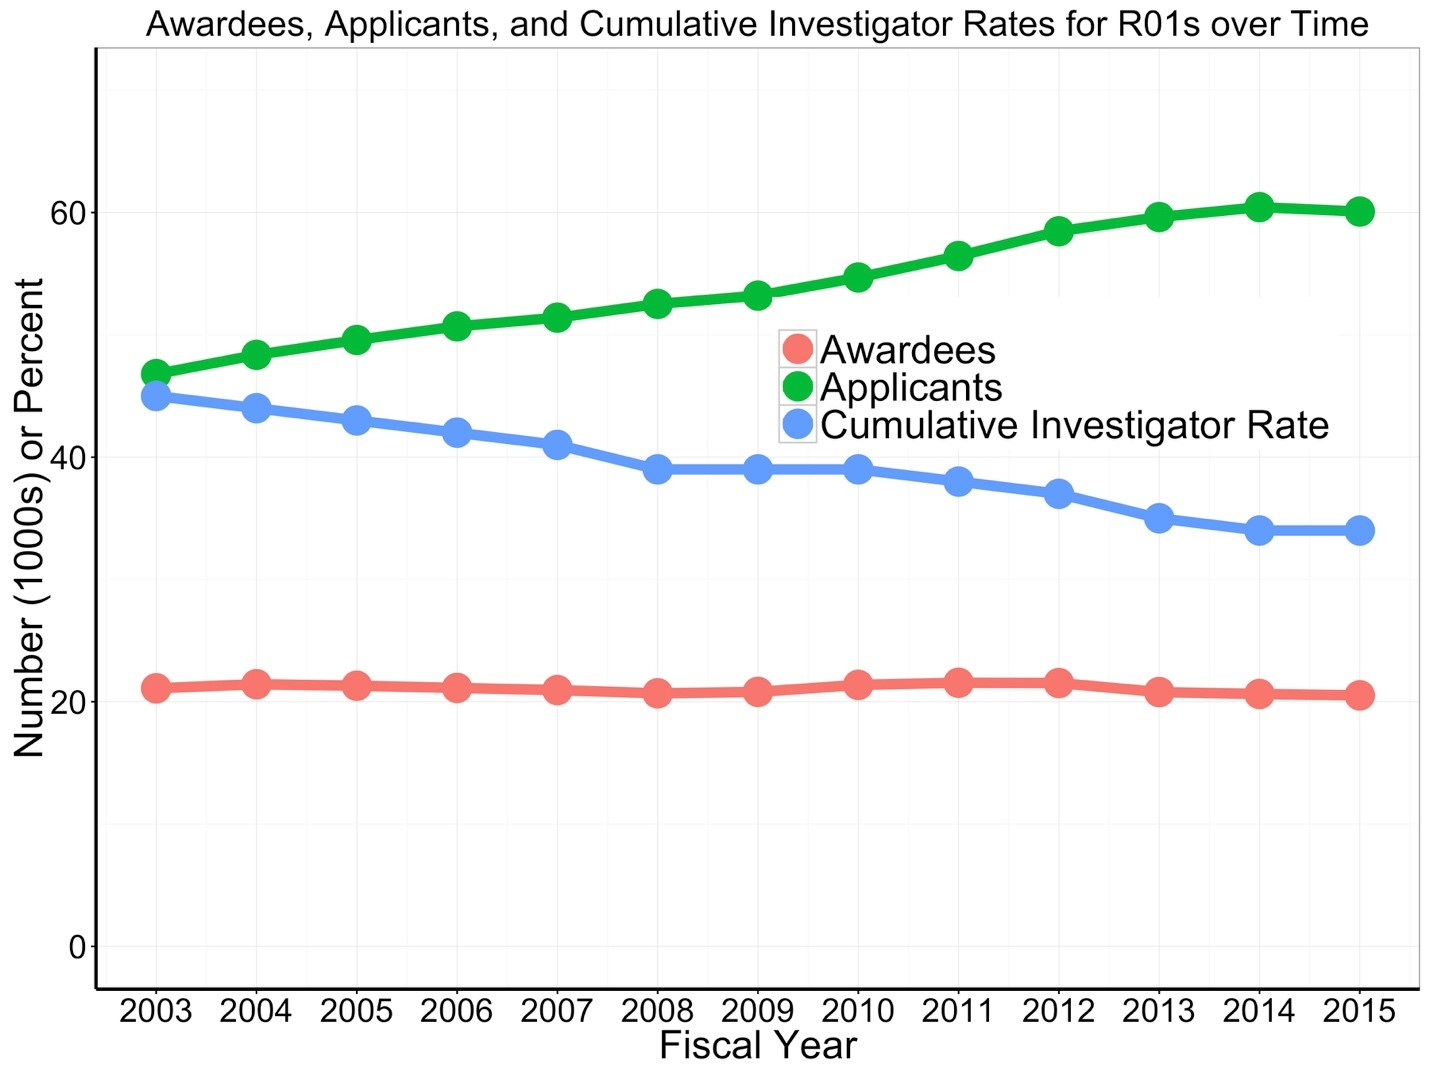 Figure taken from May 31 Open Mike blog showing cumulative investigator rates for R01s over time